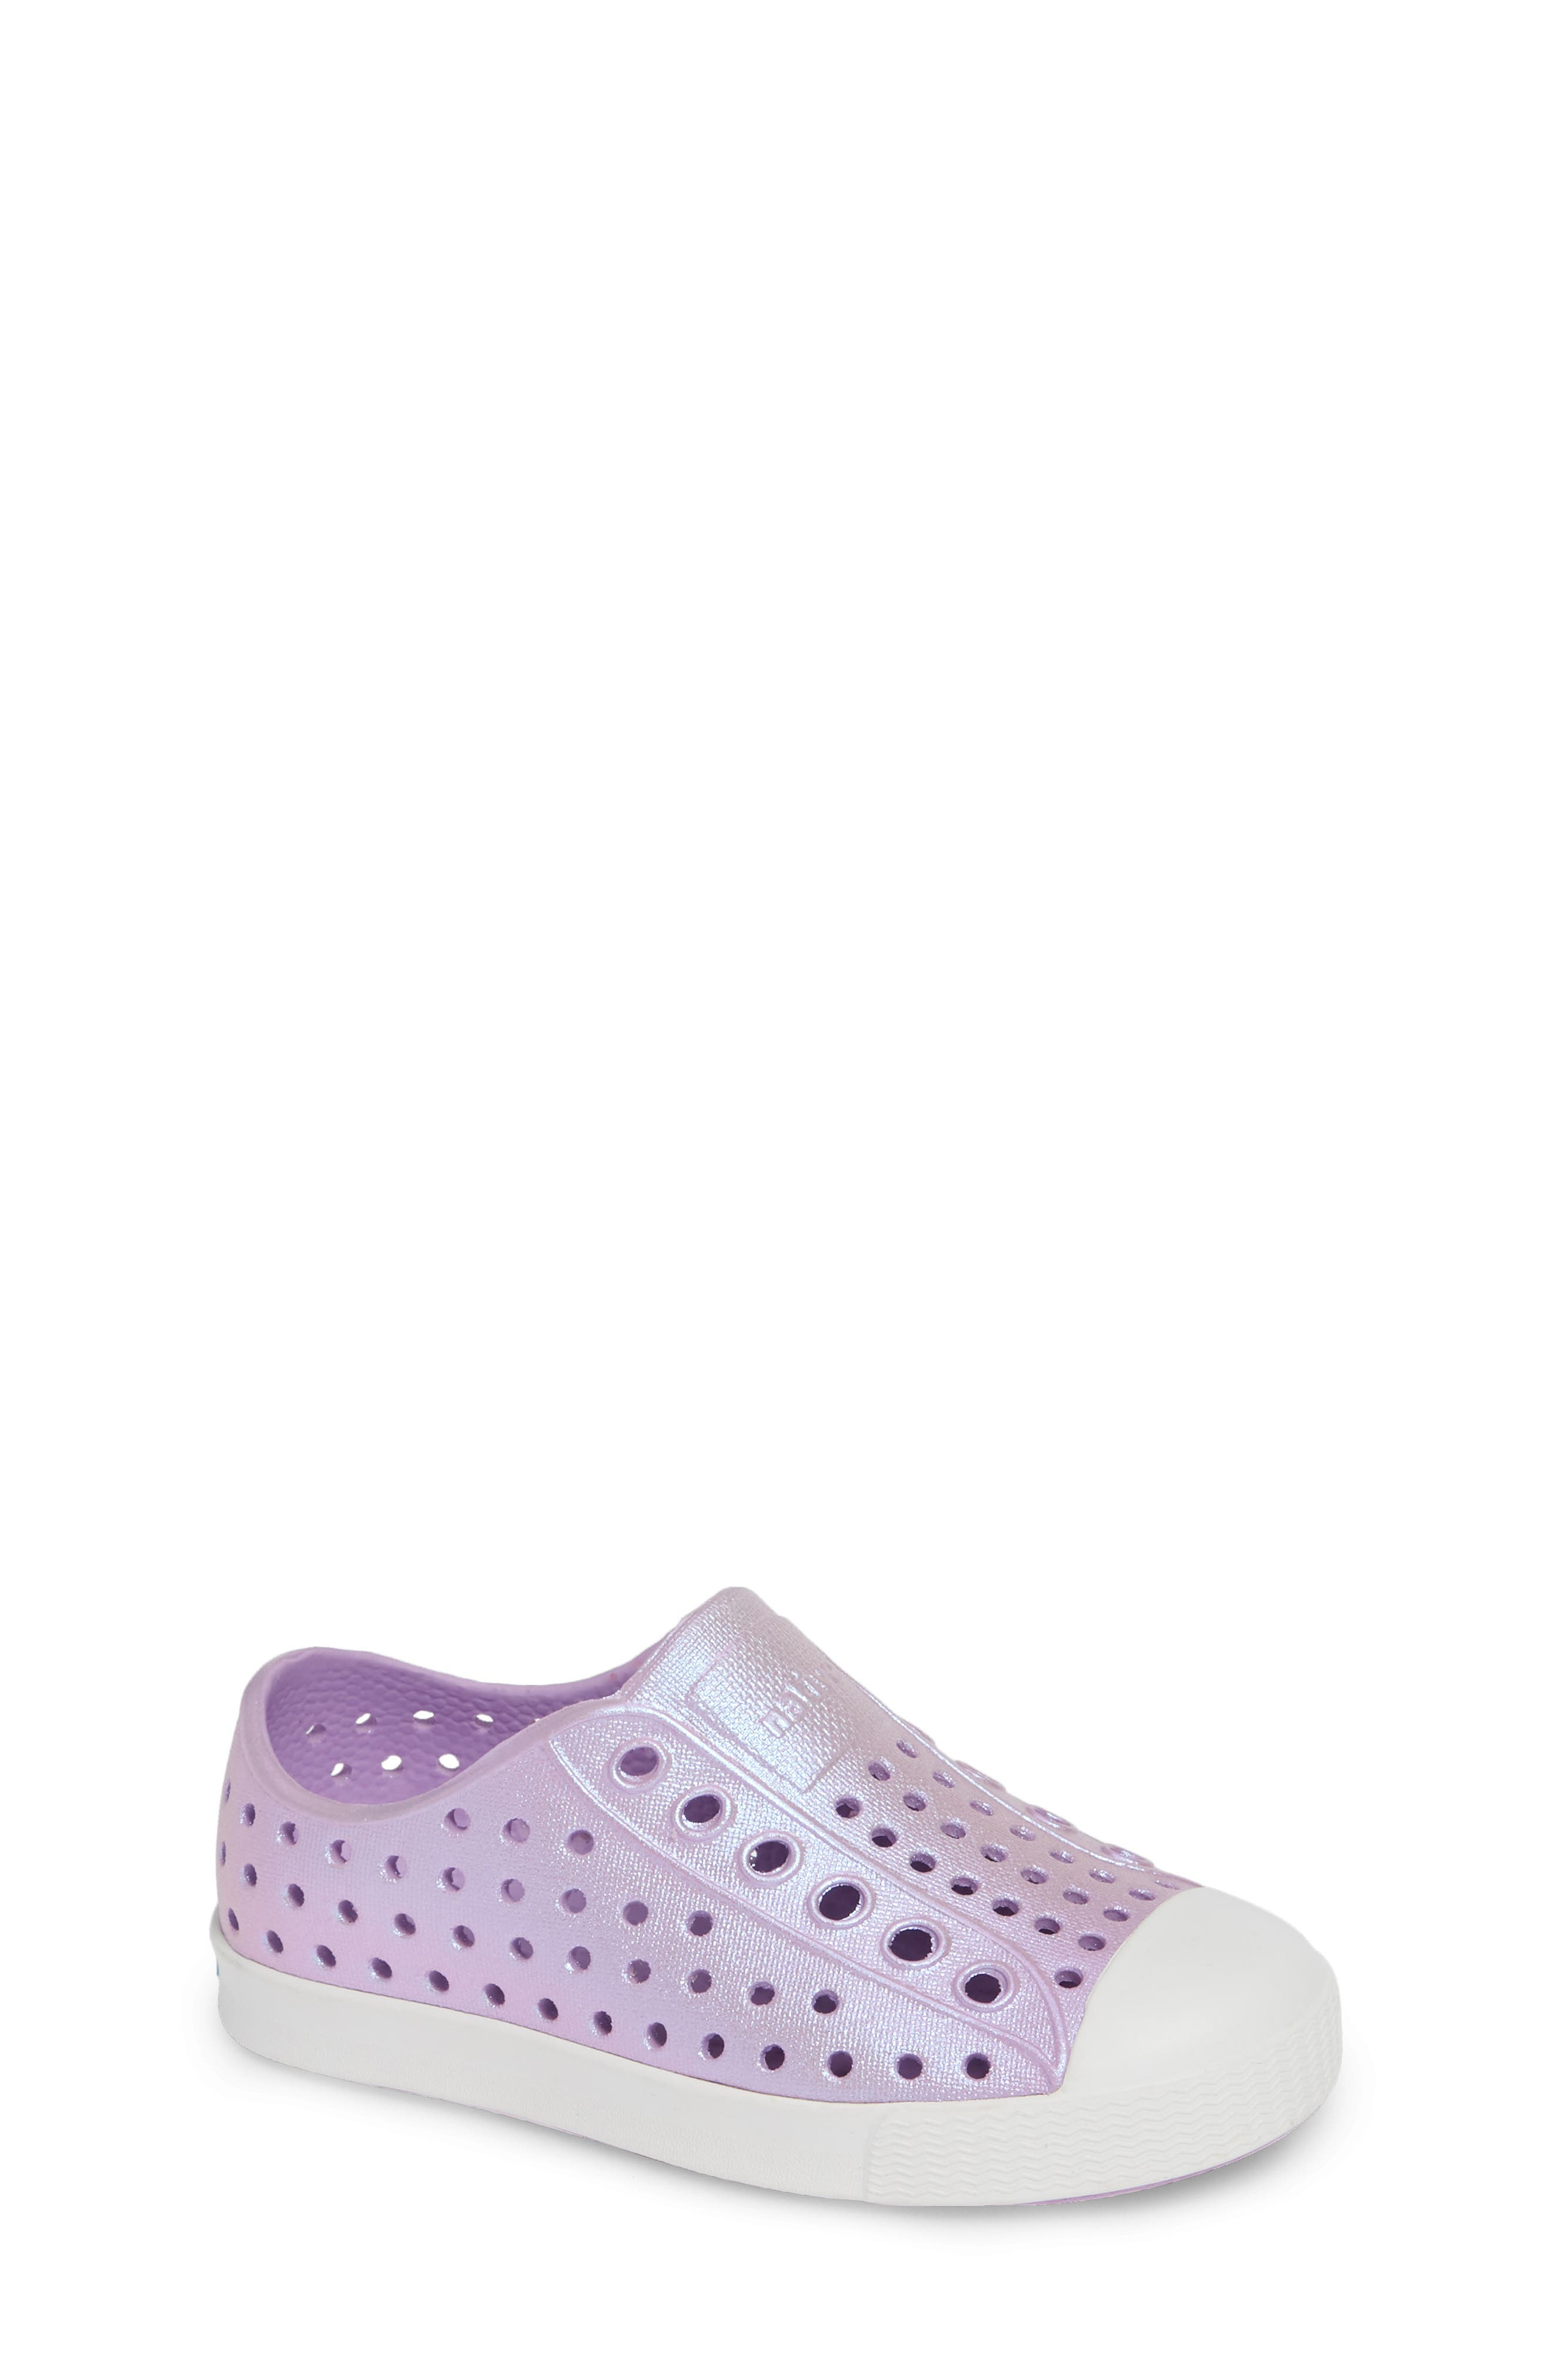 NATIVE SHOES, Jefferson Iridescent Slip-On Vegan Sneaker, Main thumbnail 1, color, LAVENDER/ SHELL WHITE/ GALAXY